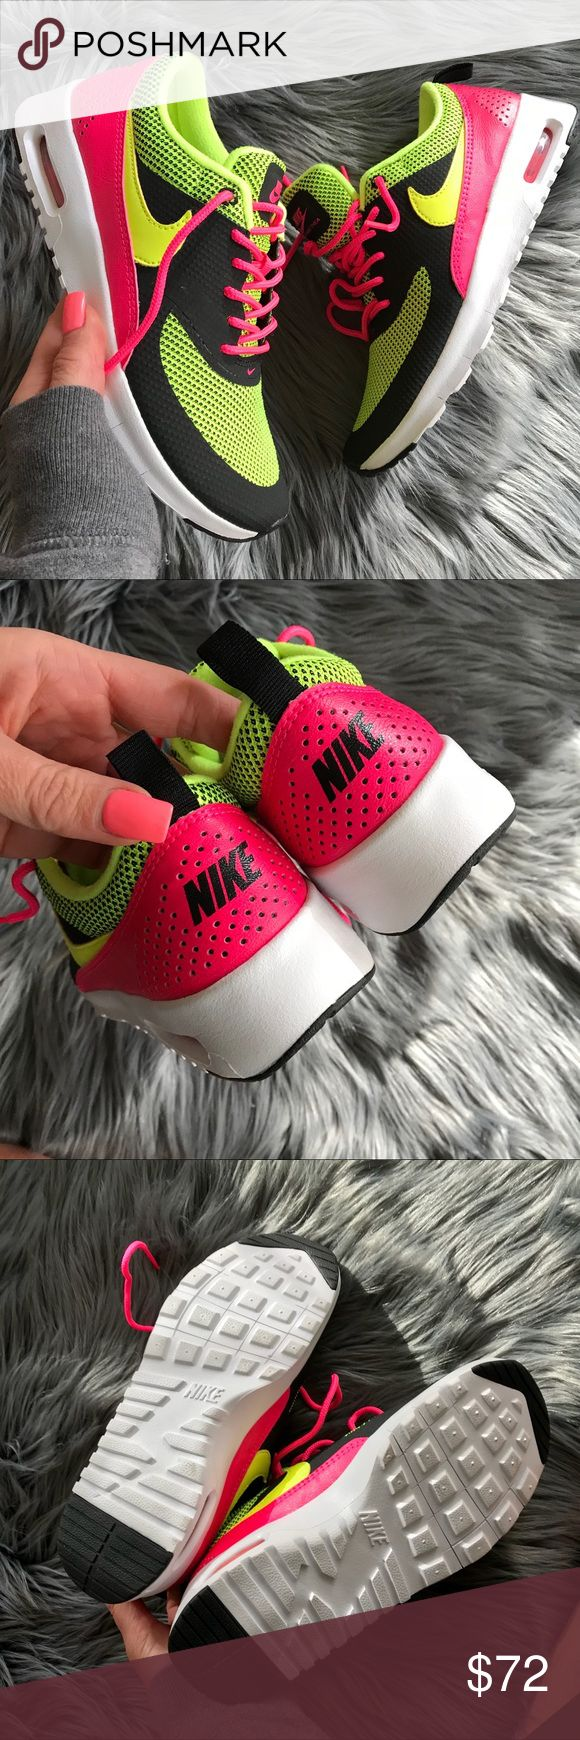 NEW 💥 NIKE KIDS AIR MAX THEA | NEON BRAND NEW, NIKE FREE! Cute, comfy & super bright NEON NIKES! ✨ Original NIKE box no lid. ✨ THE MOST AWESOME AIR MAX OF THEM ALL! The NIKE AIR MAX THEA.   Ships same or next day from my smoke free home.   PRICED FIRM, offers will be considered through the offer button only. Bundle to save. ✨   100% authentic & direct from NIKE Nike Shoes Sneakers